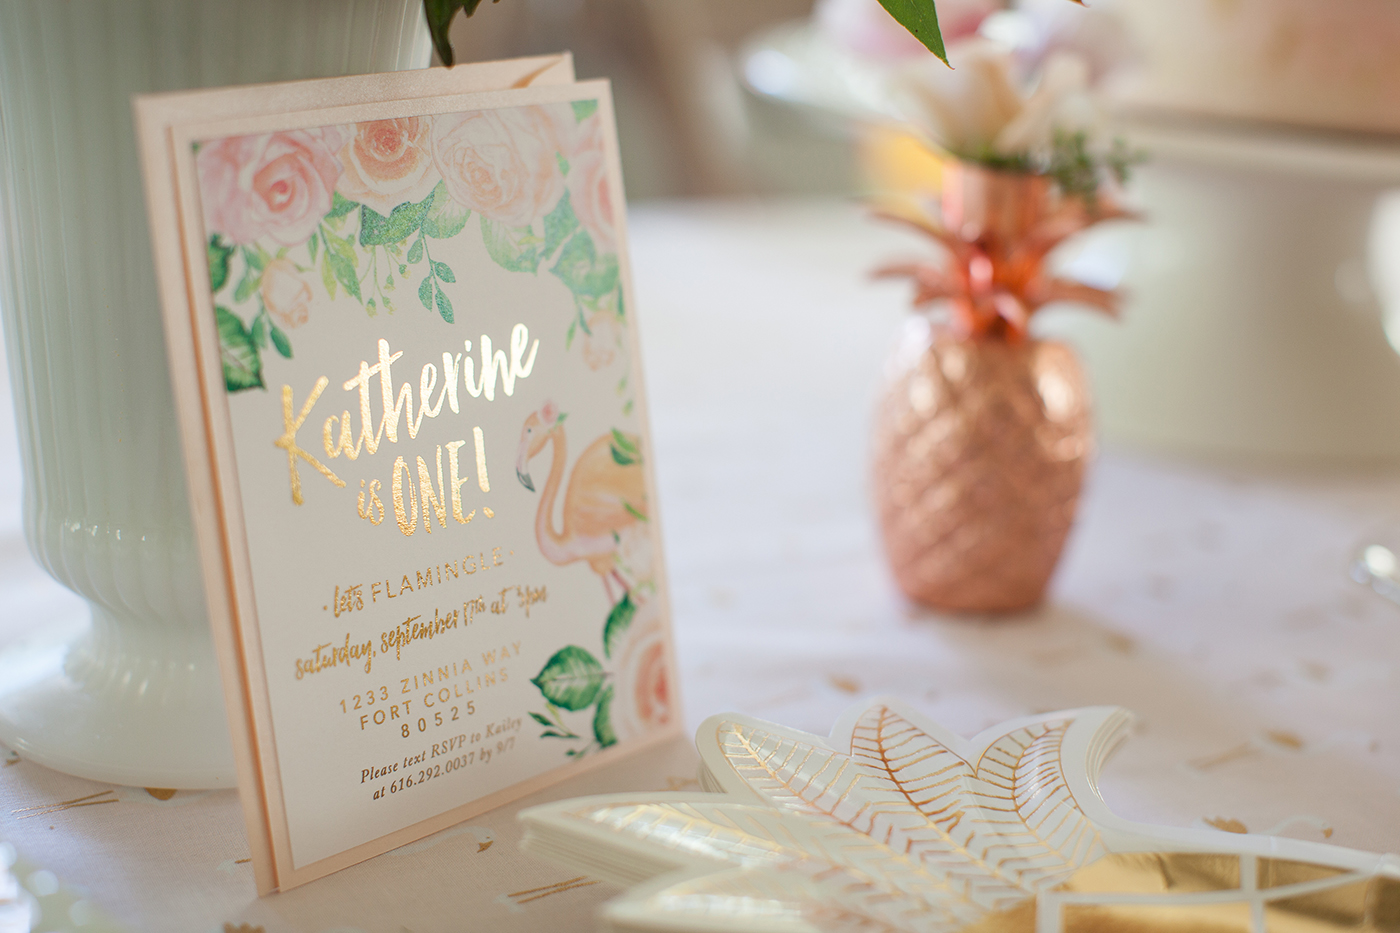 Flamingo and Floral Party Details